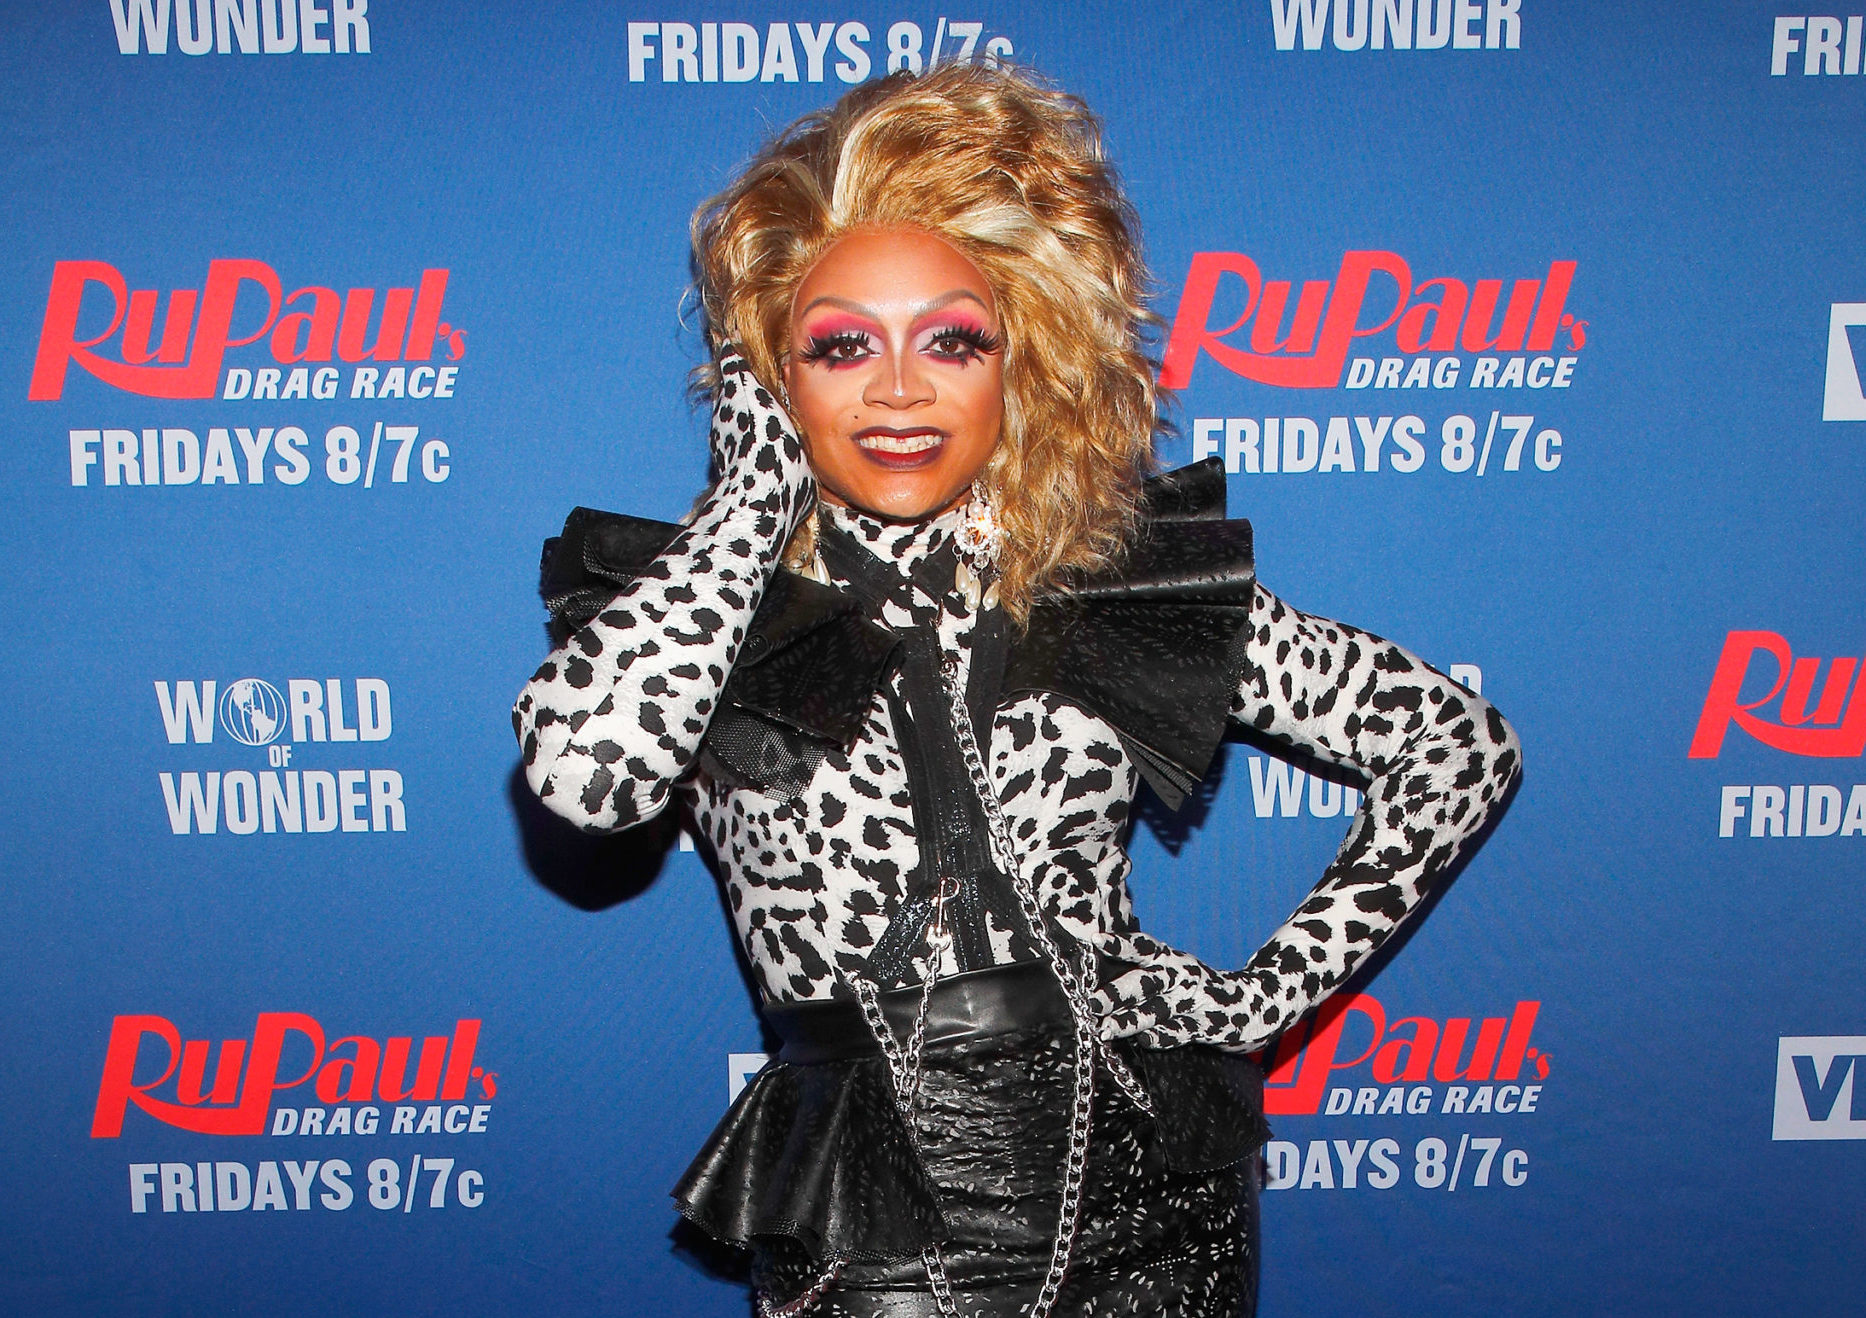 Drag Race legend Heidi N Closet wants nothing more than for queer Black youth to know 'you are deserving of love'